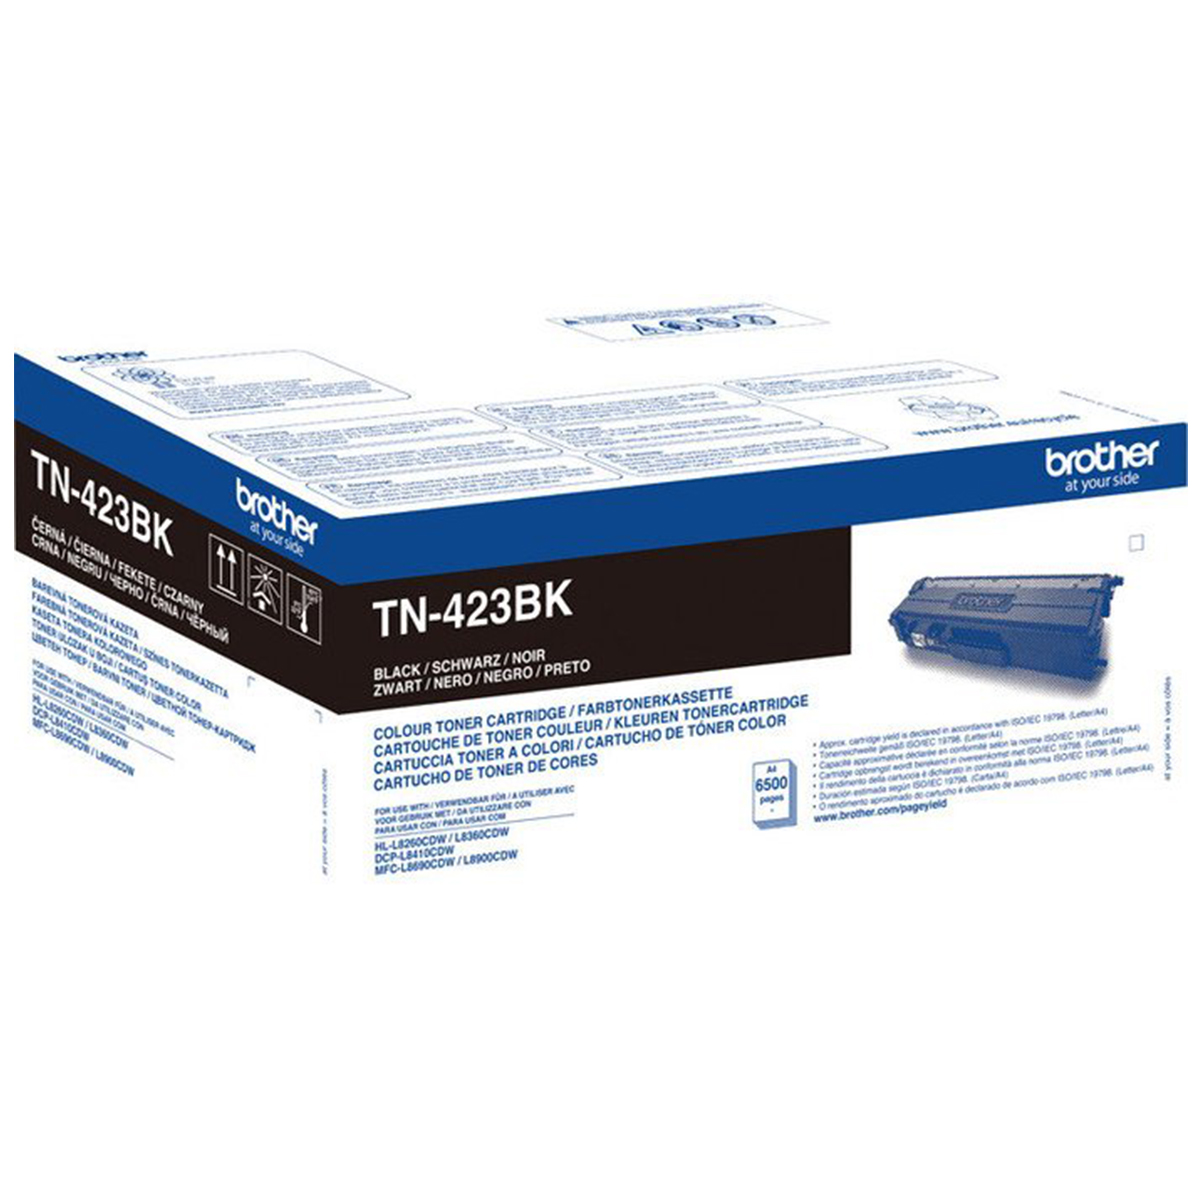 Brother TN-423BK High Yield Black Toner